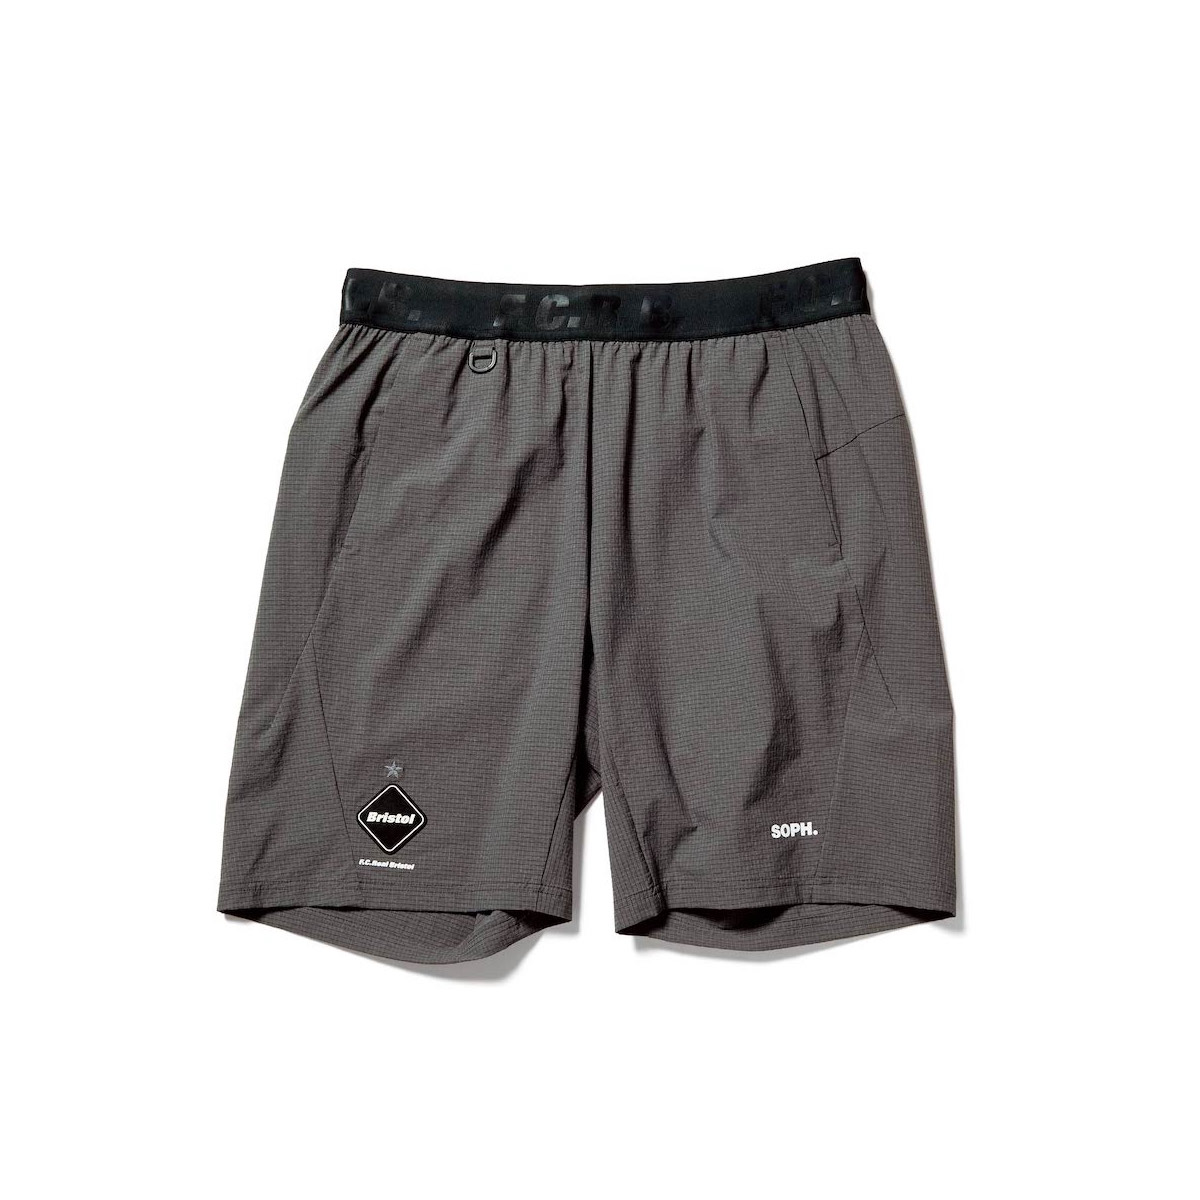 F.C.Real Bristol / STRETCH LIGHT WEIGHT EASY SHORTS (Gray)